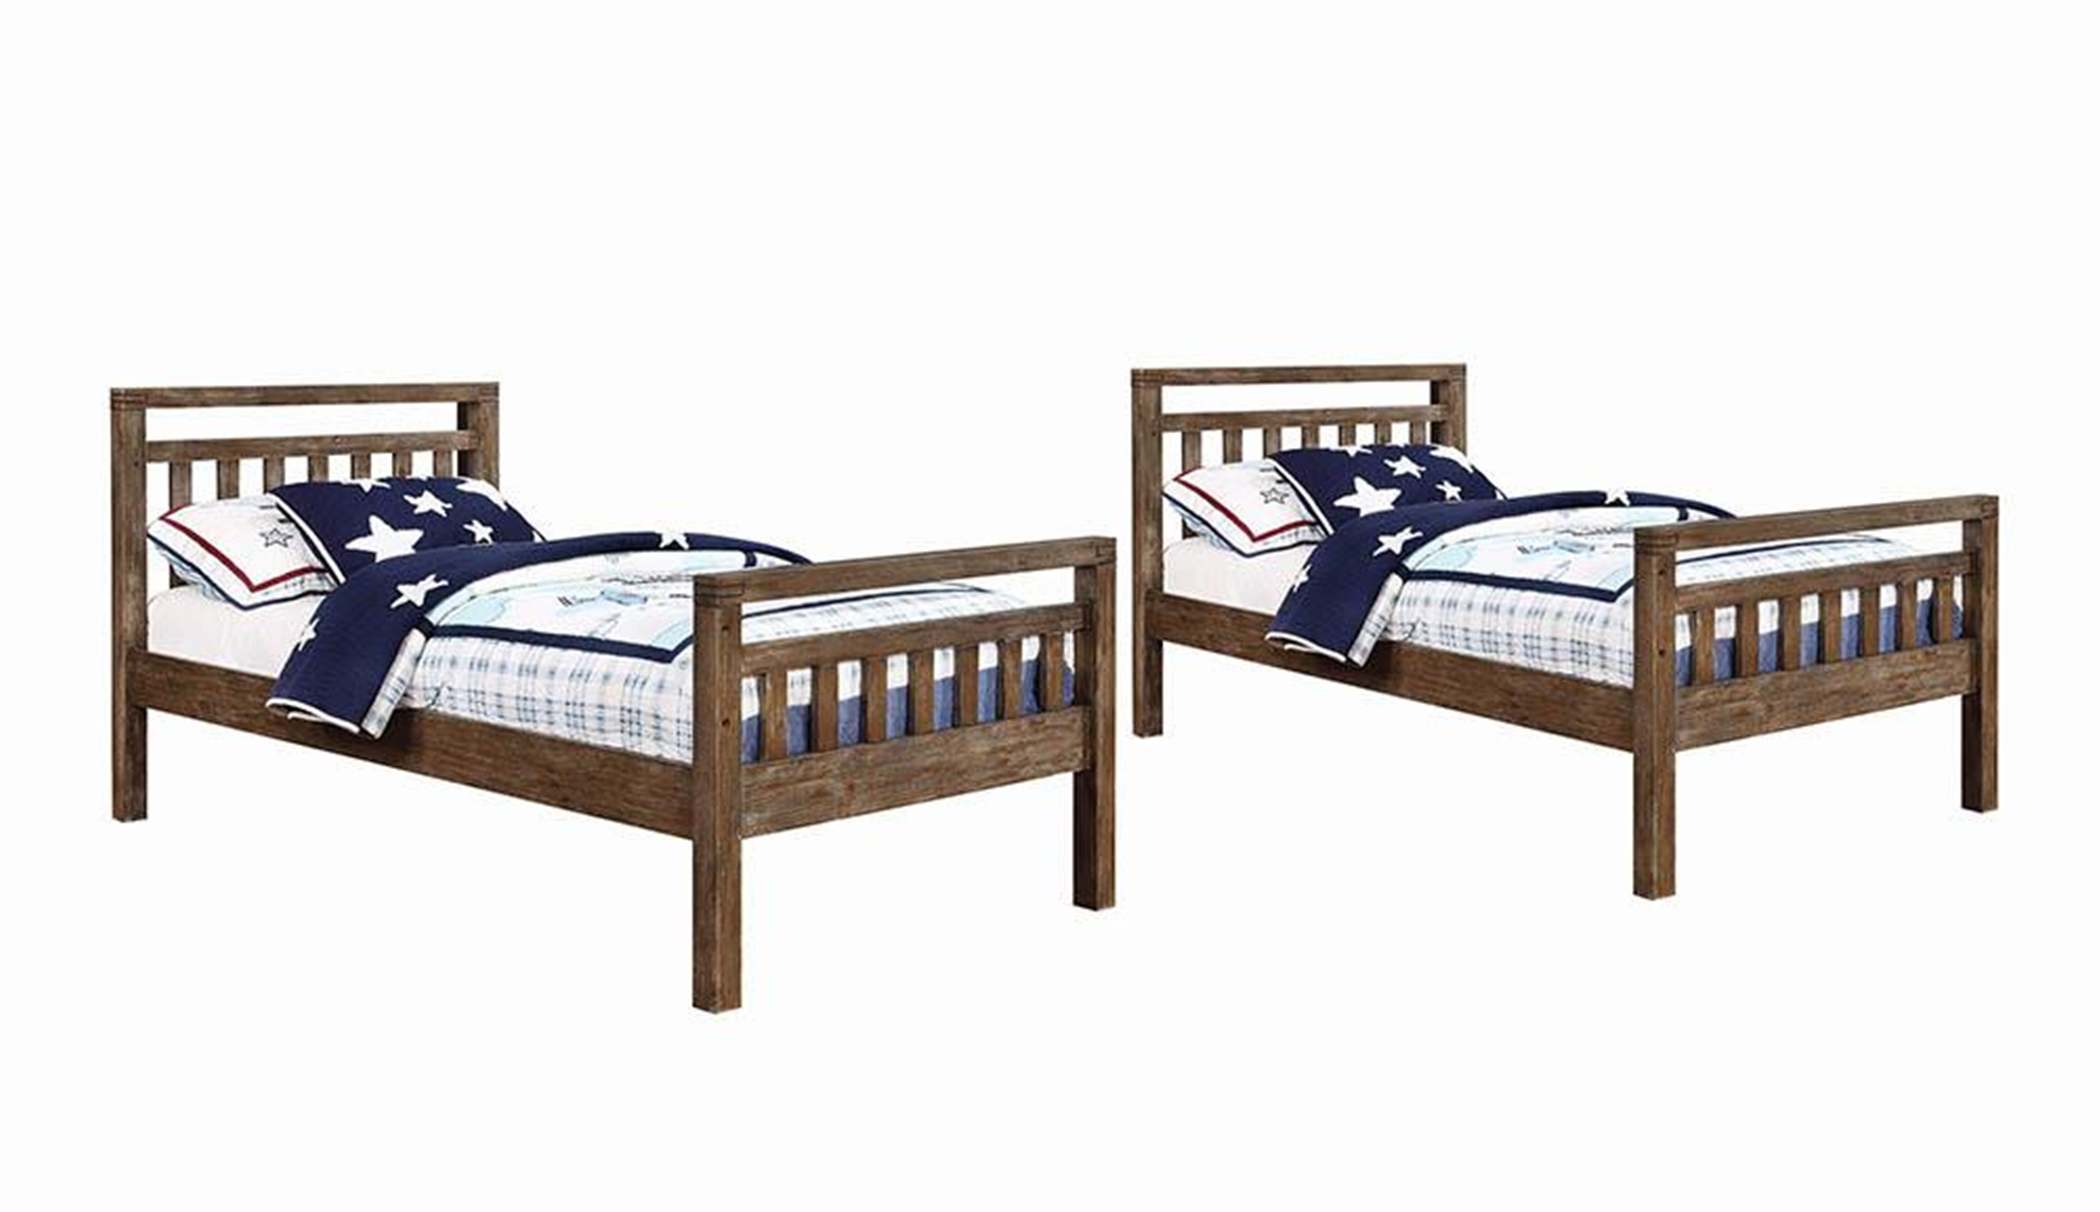 Malcolm Brushed Acacia Twin-over-Twin Bunk Bed